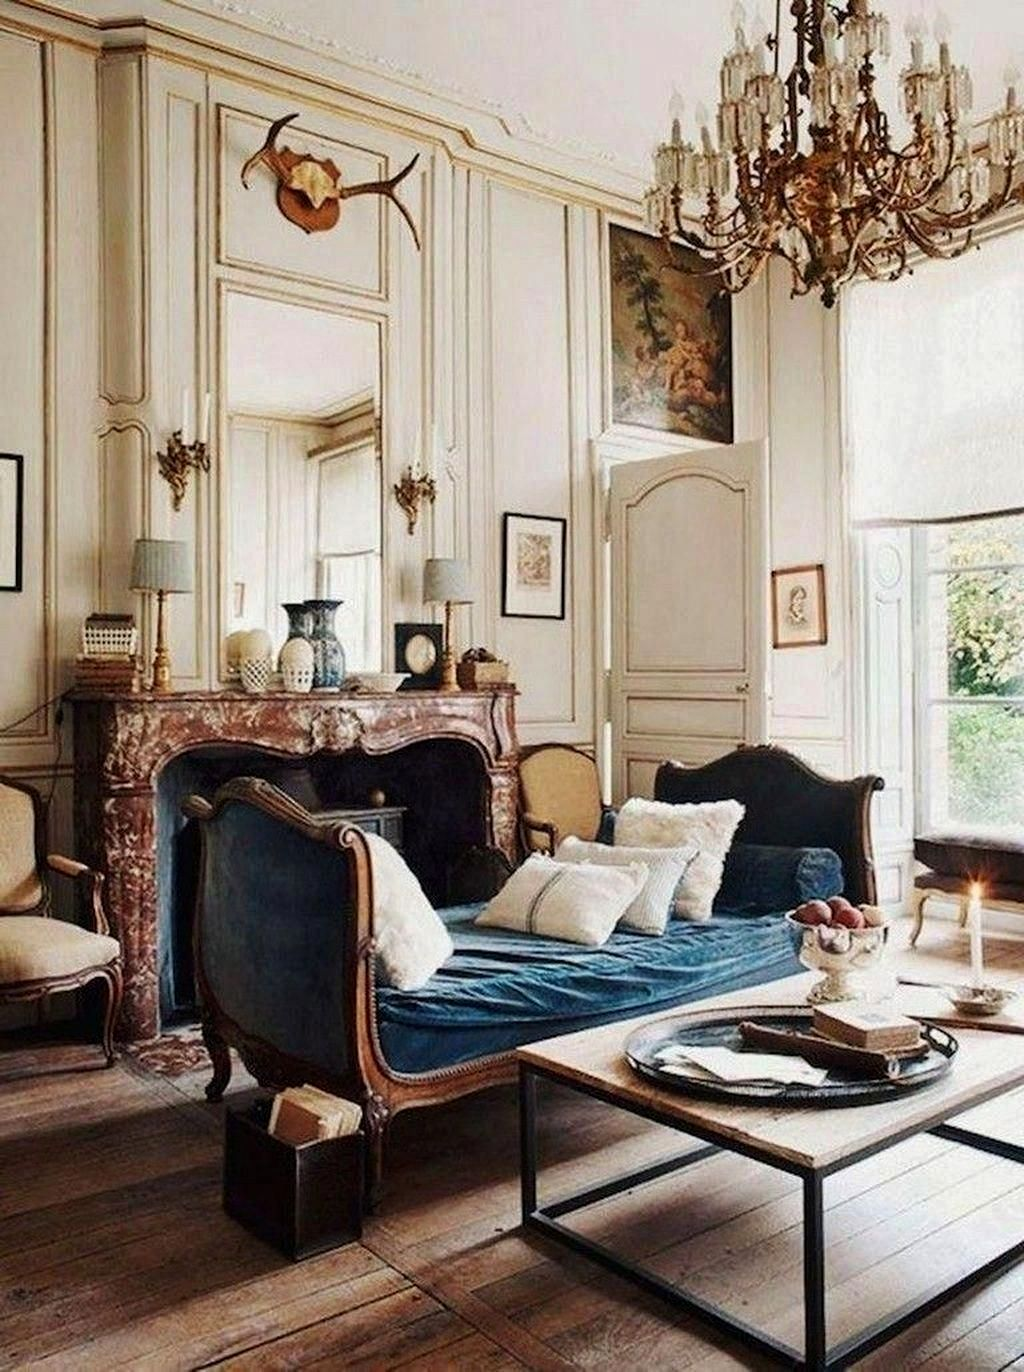 20 minimalist bedroom decorating ideas in 2020  french